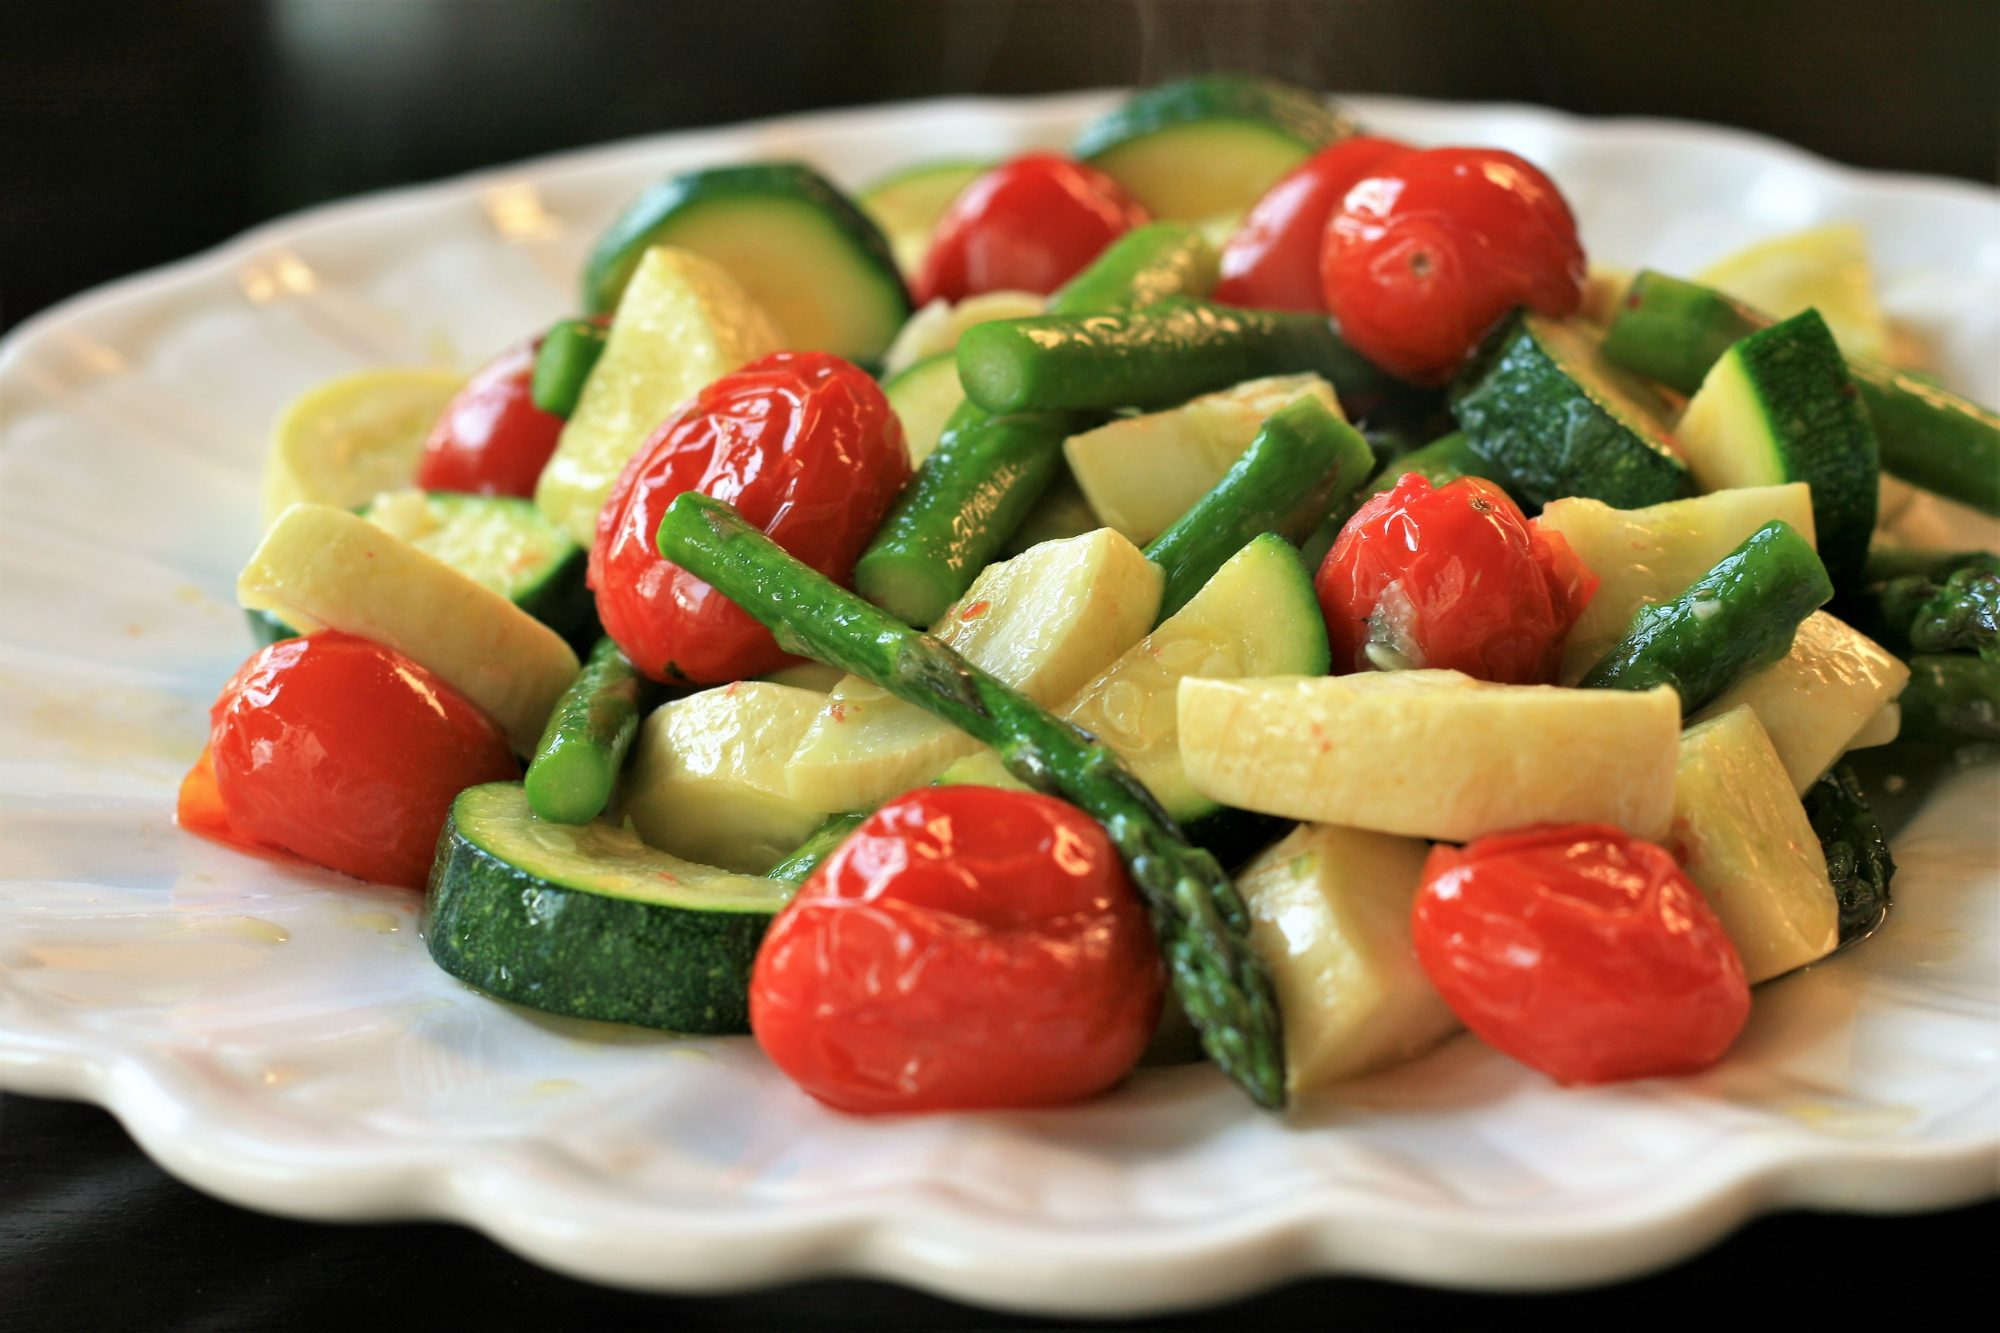 White dish with roasted asparagus, zucchini, cherry tomatoes, and squash